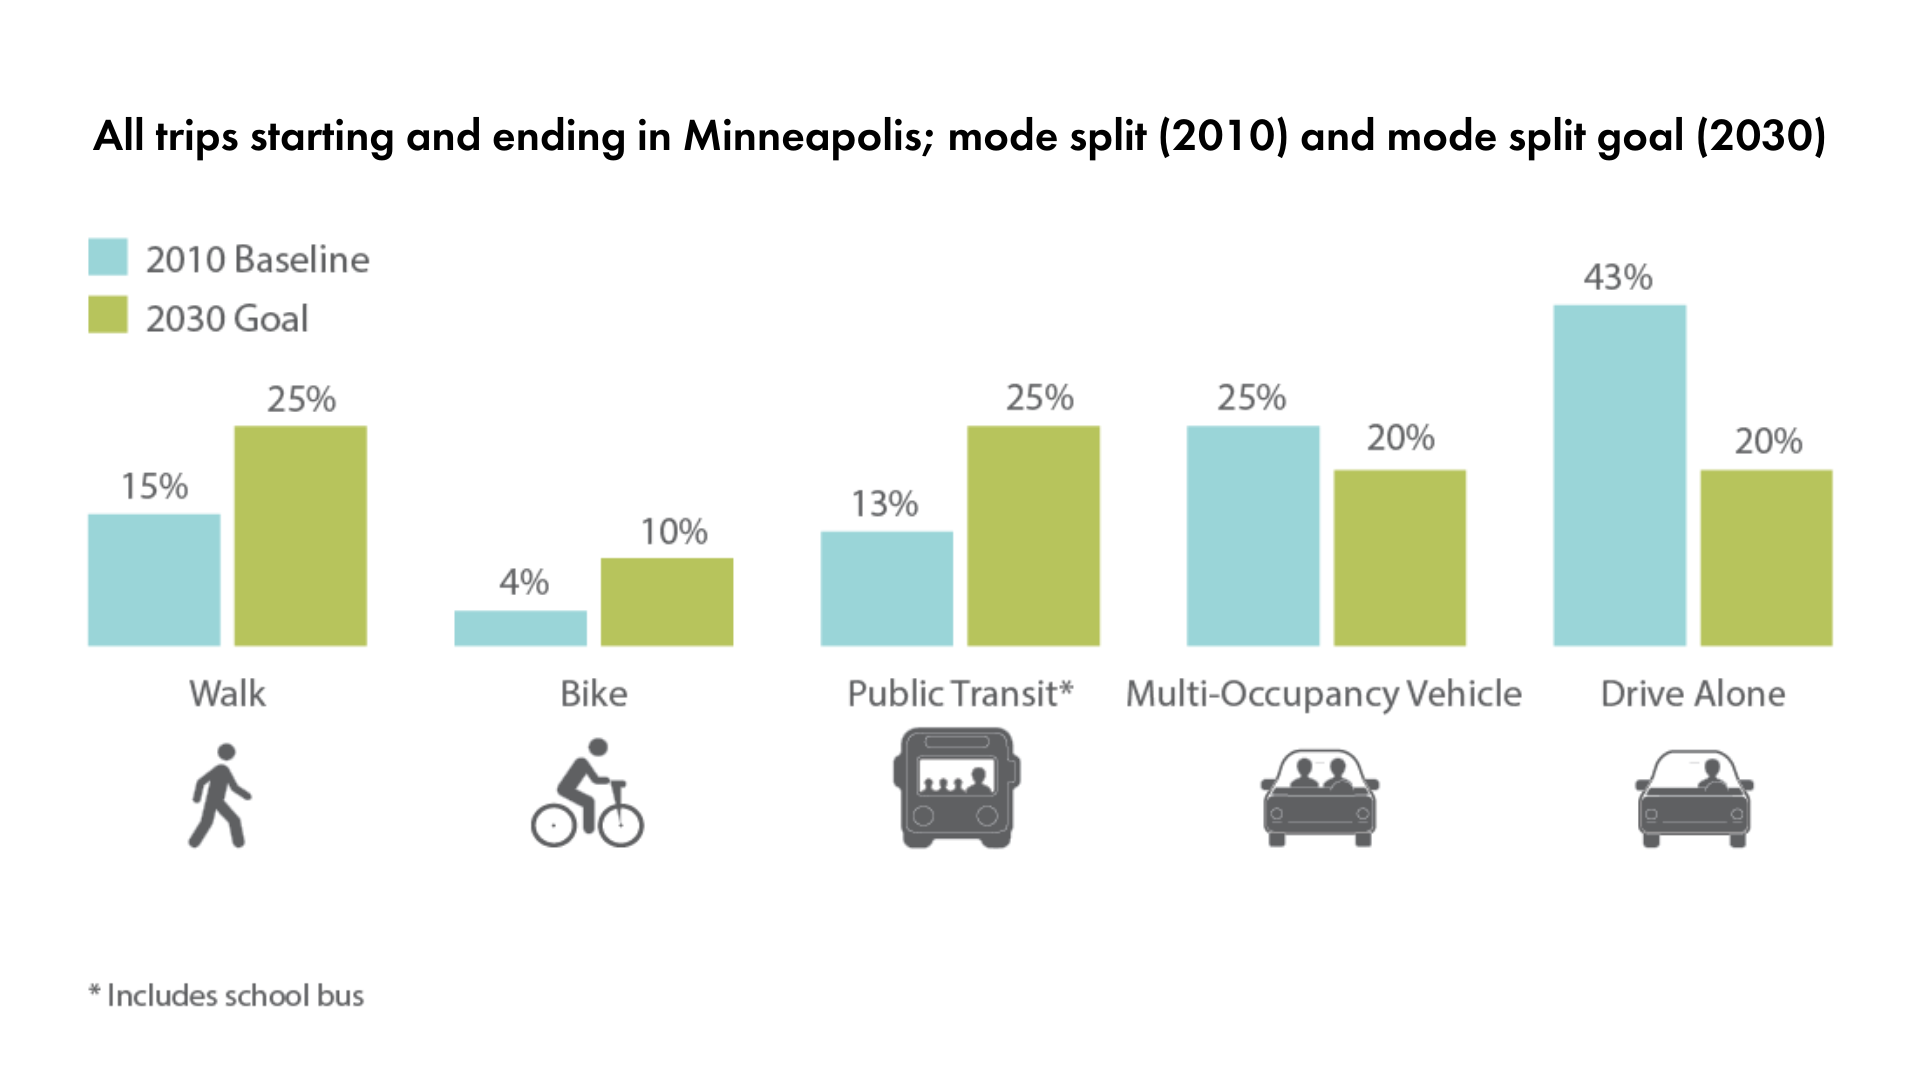 Chart showing baseline mode share for different modes and 2030 goal